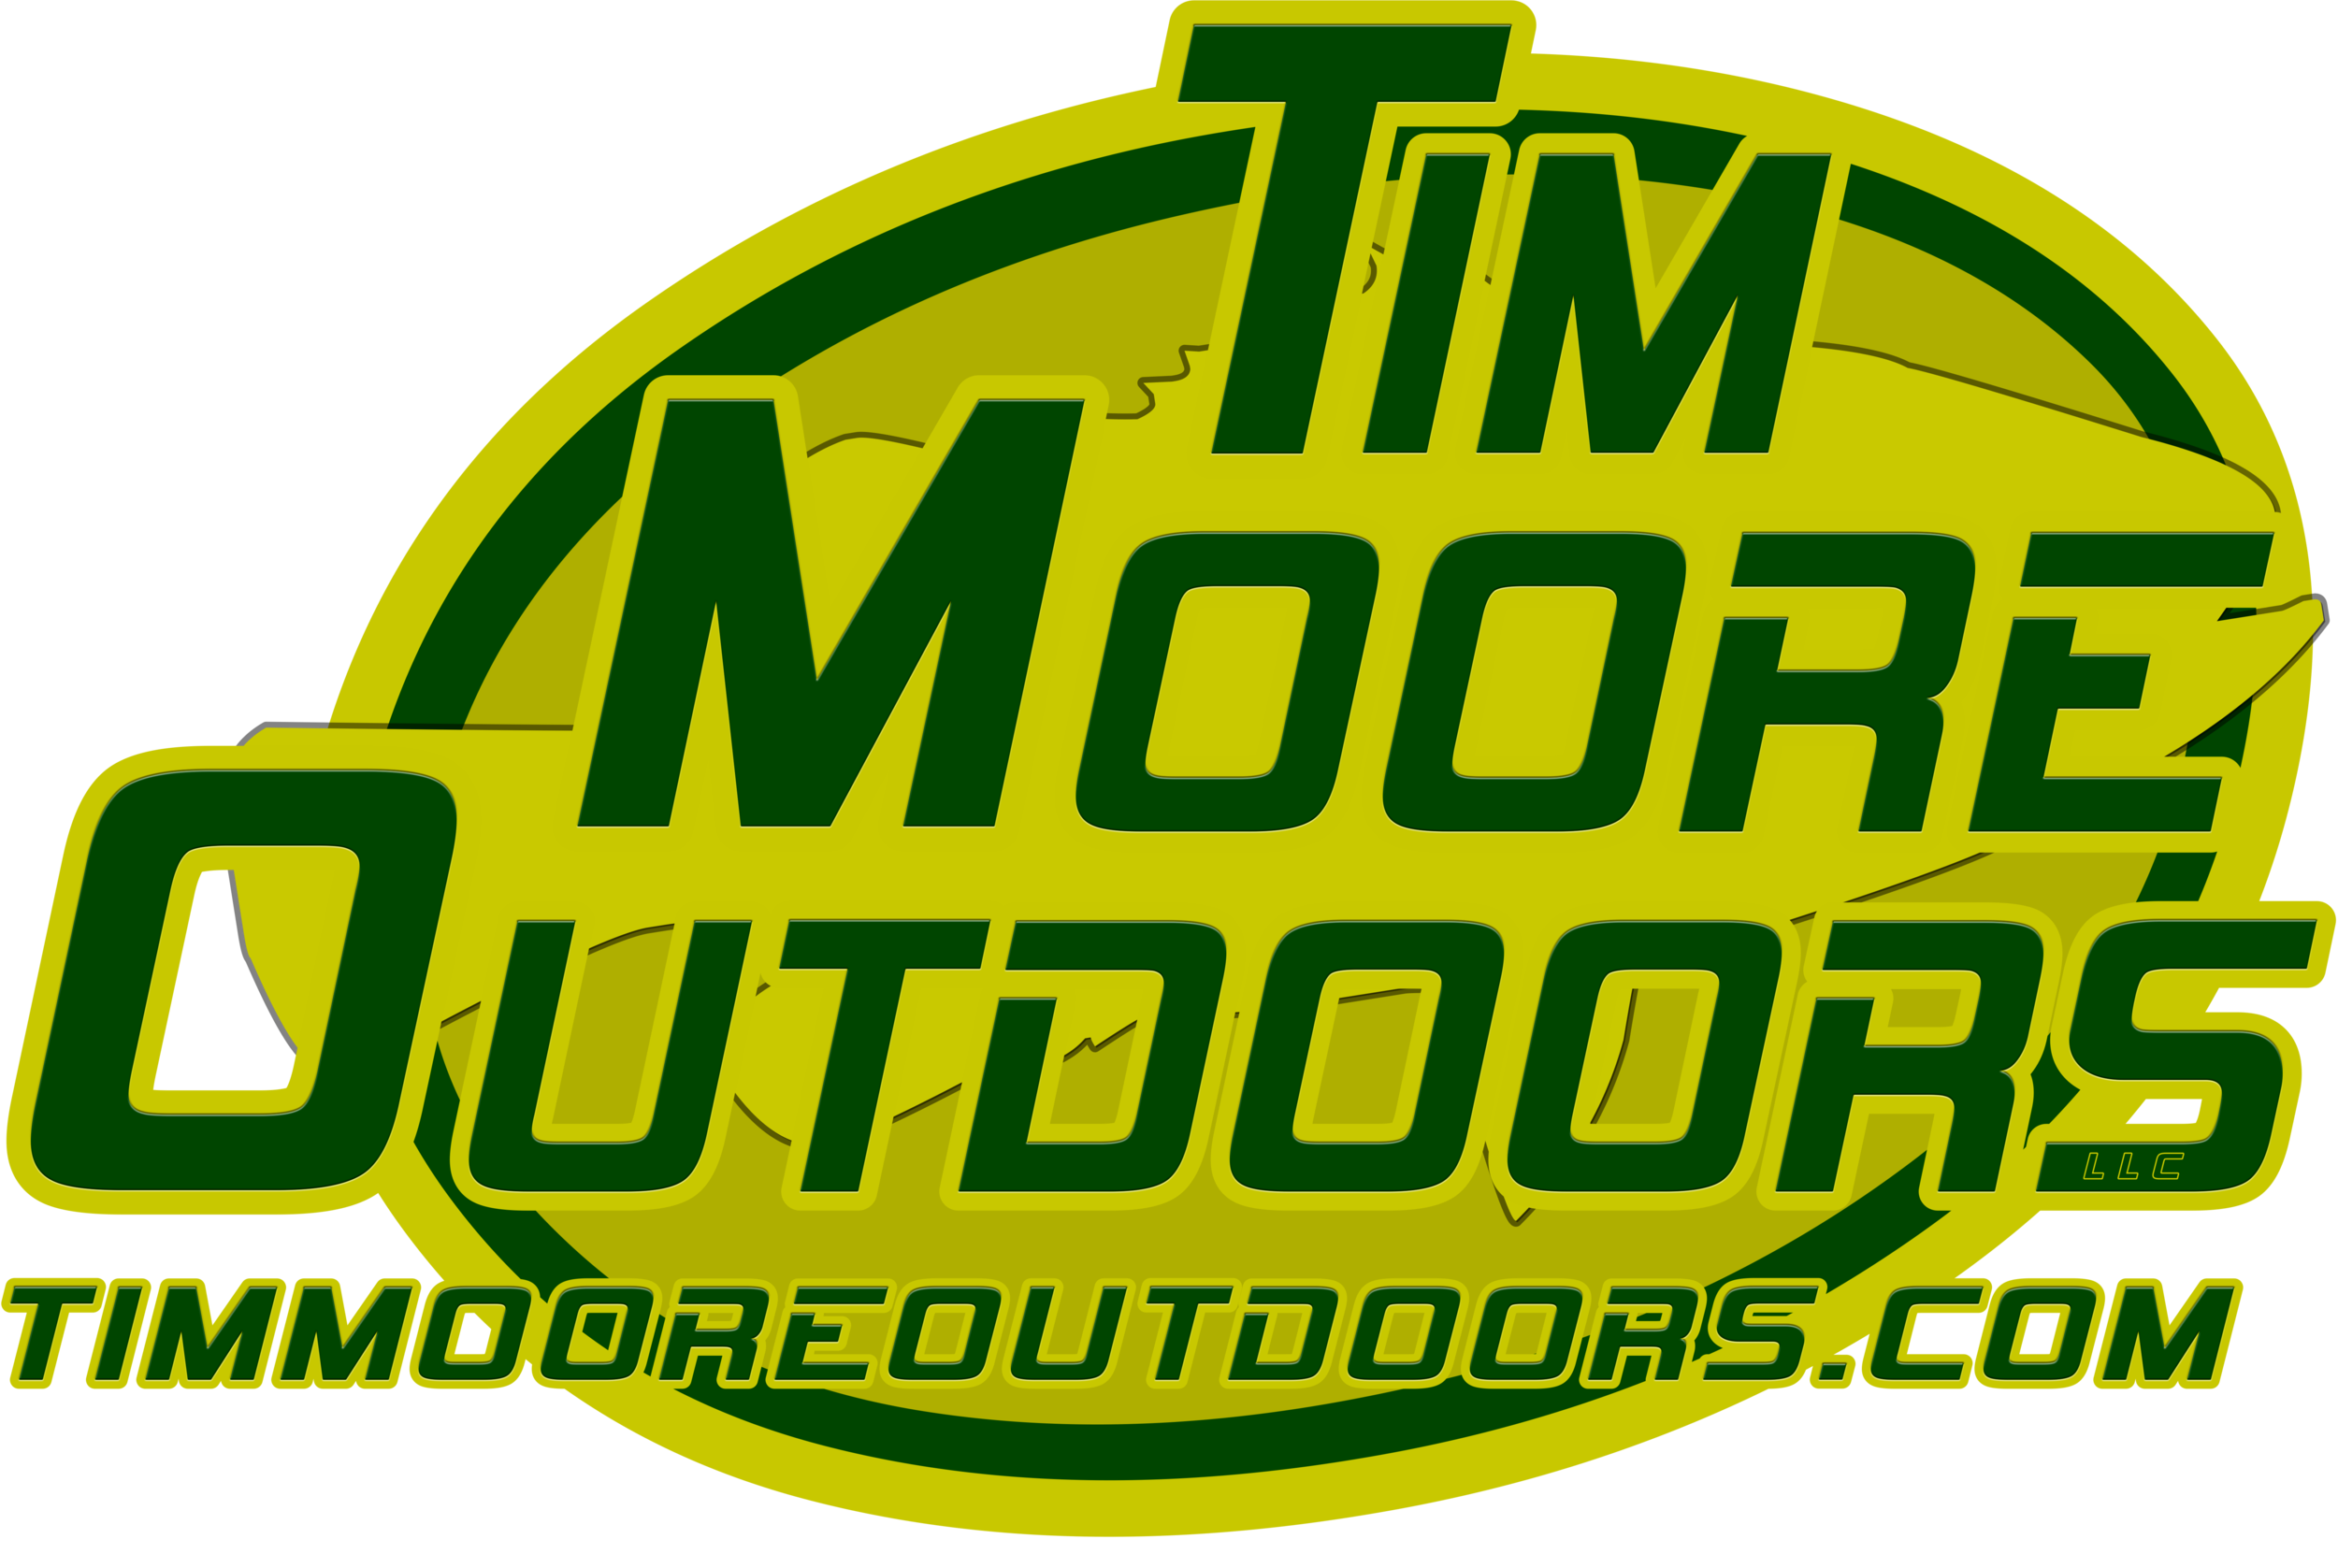 Tim Moore Outdoors has donated a four-hour private New Hampshire based fishing trip (Kayak) for one person (for striped bass or smallmouth/largemouth bass). A private 1 on 1 fishing trip with a PRO!  $250 value  Kayak and all fishing gear provided.